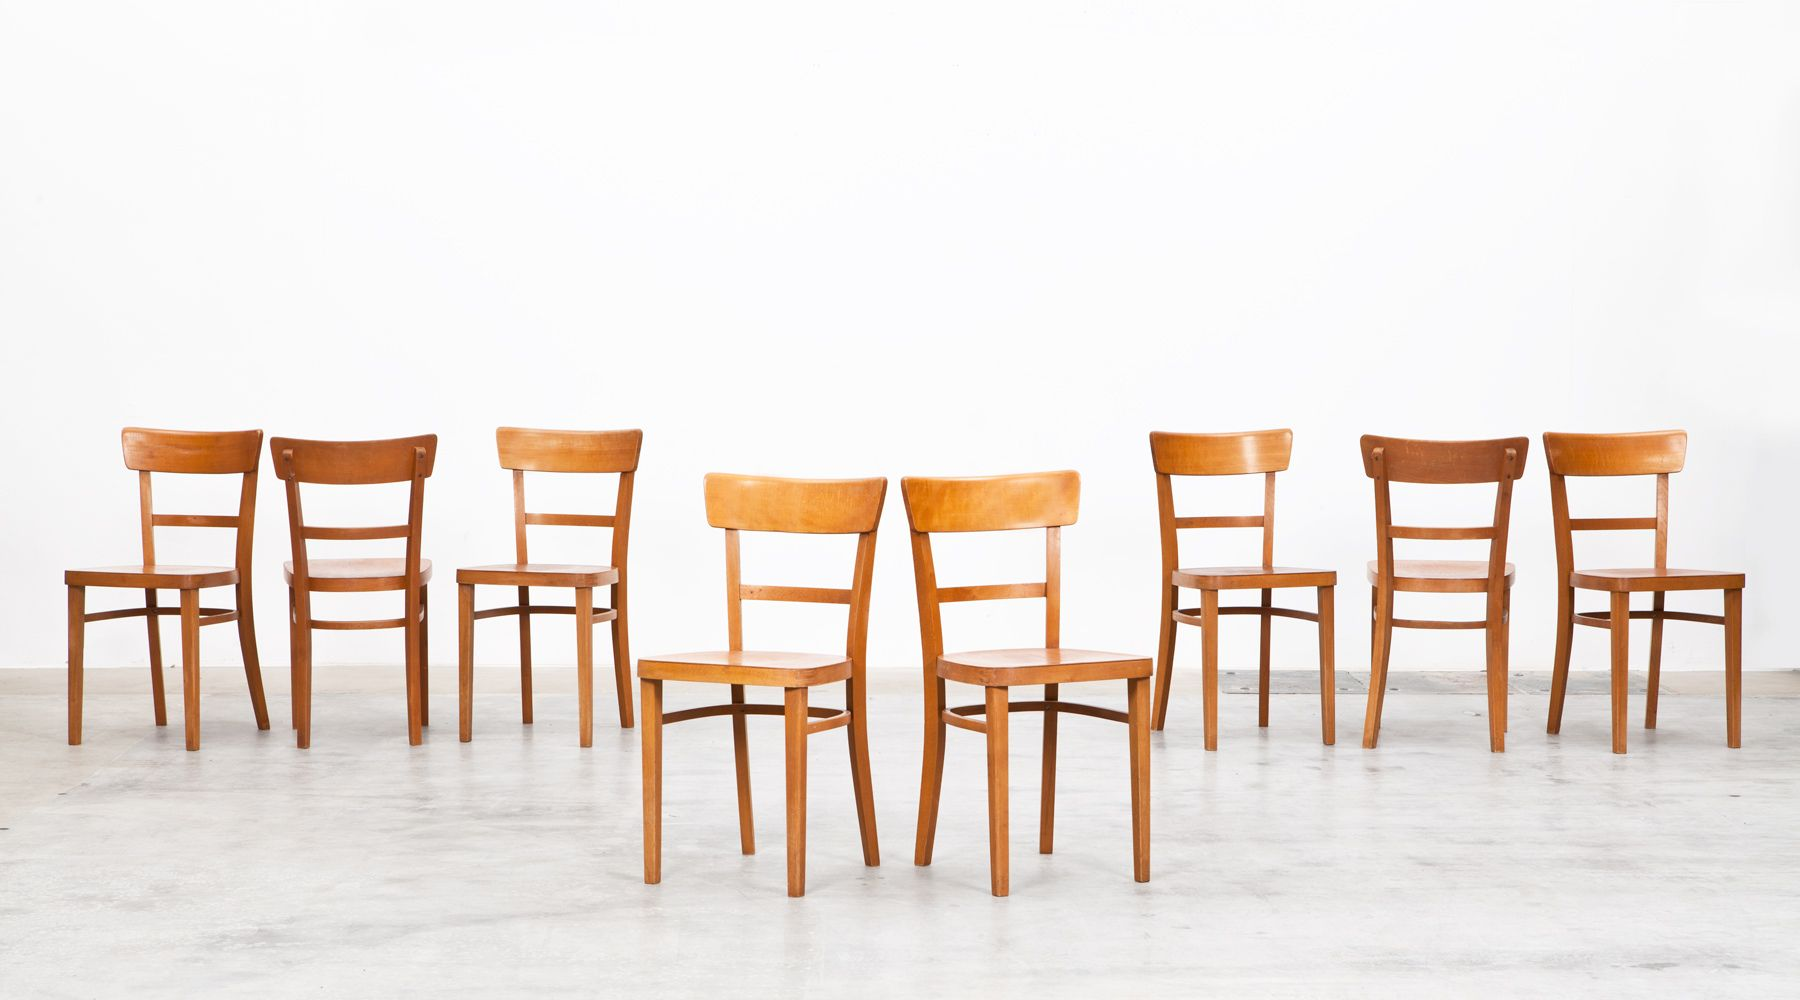 Chairs (12)